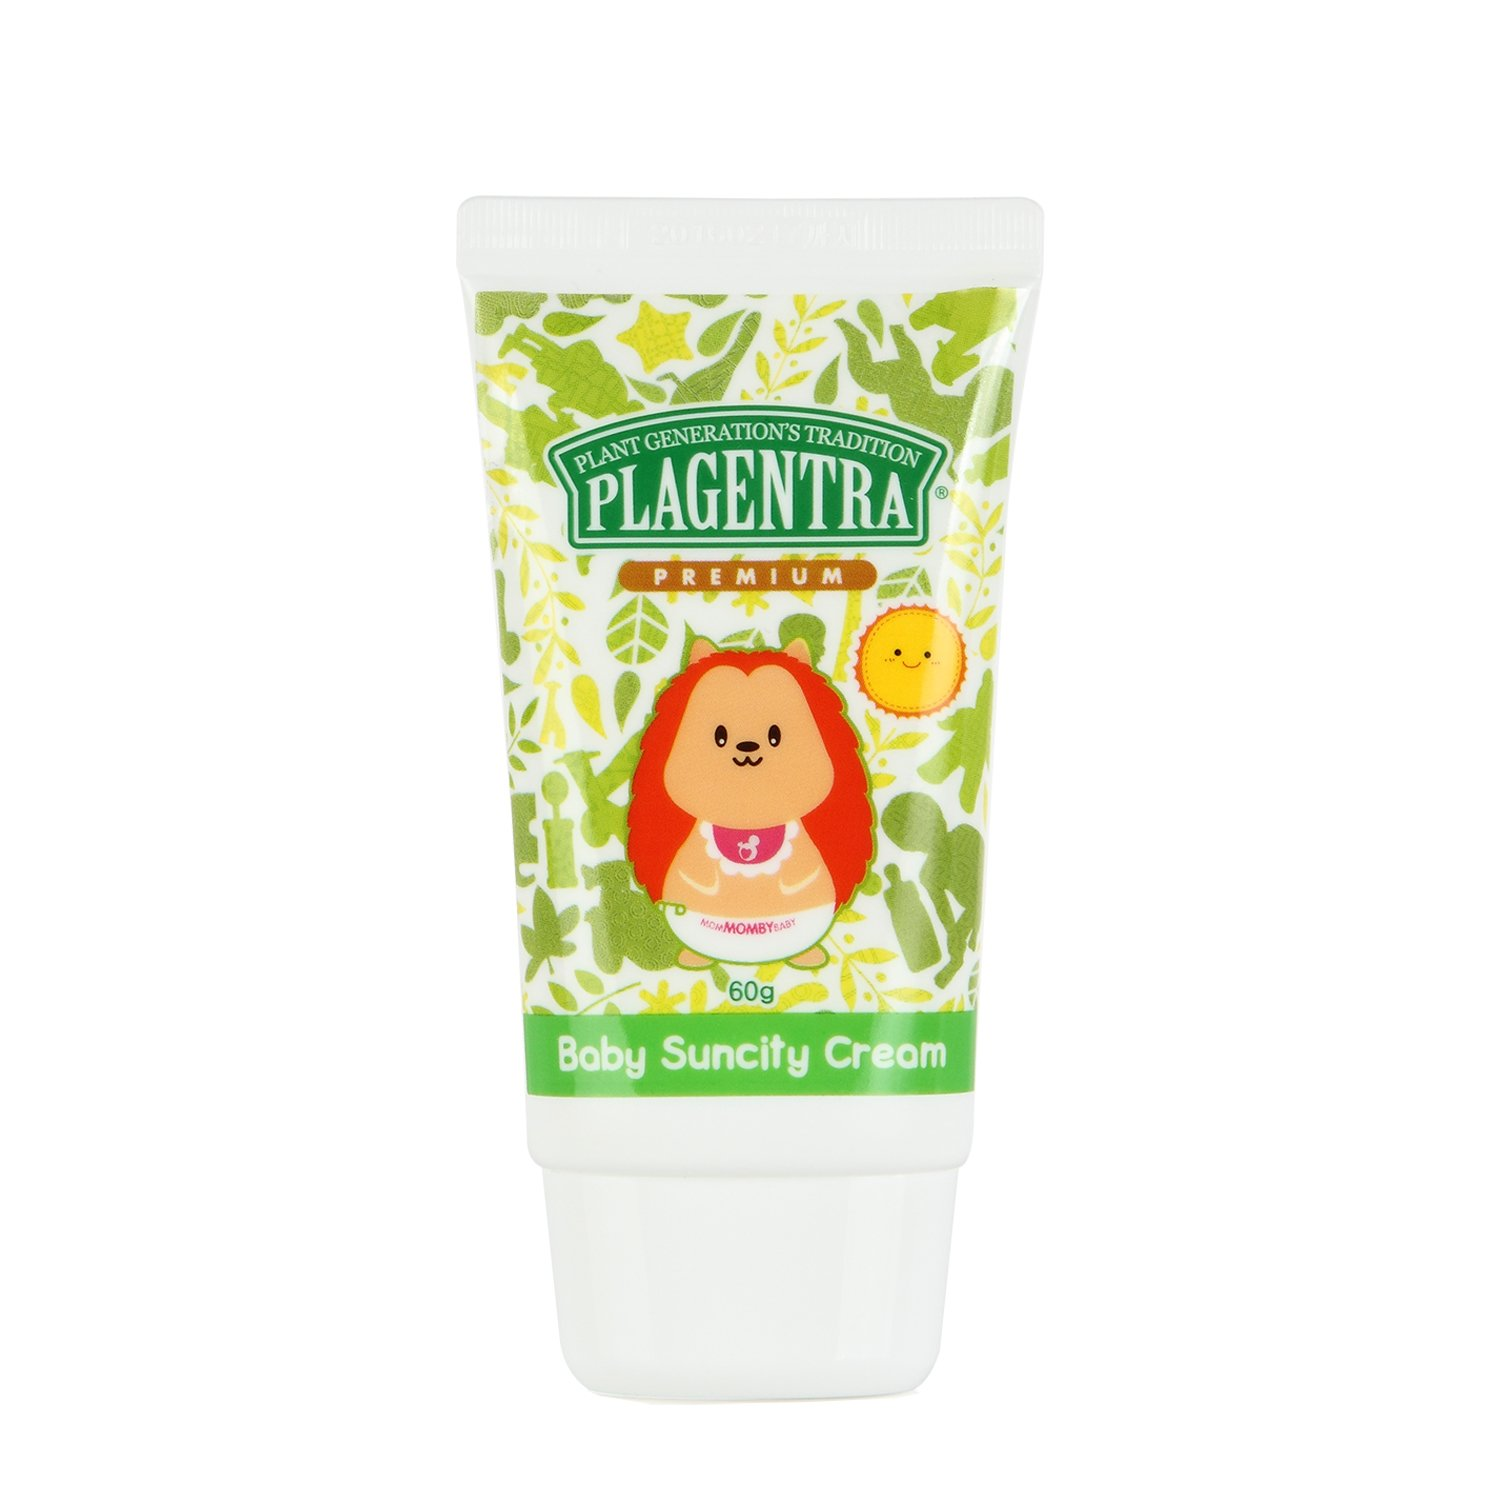 PLAGENTRA Baby Suncity Cream (SPF 36 / PA++) - Natural Sunscreen, 2.11 Ounce Winnova Co. LTD. 1405060